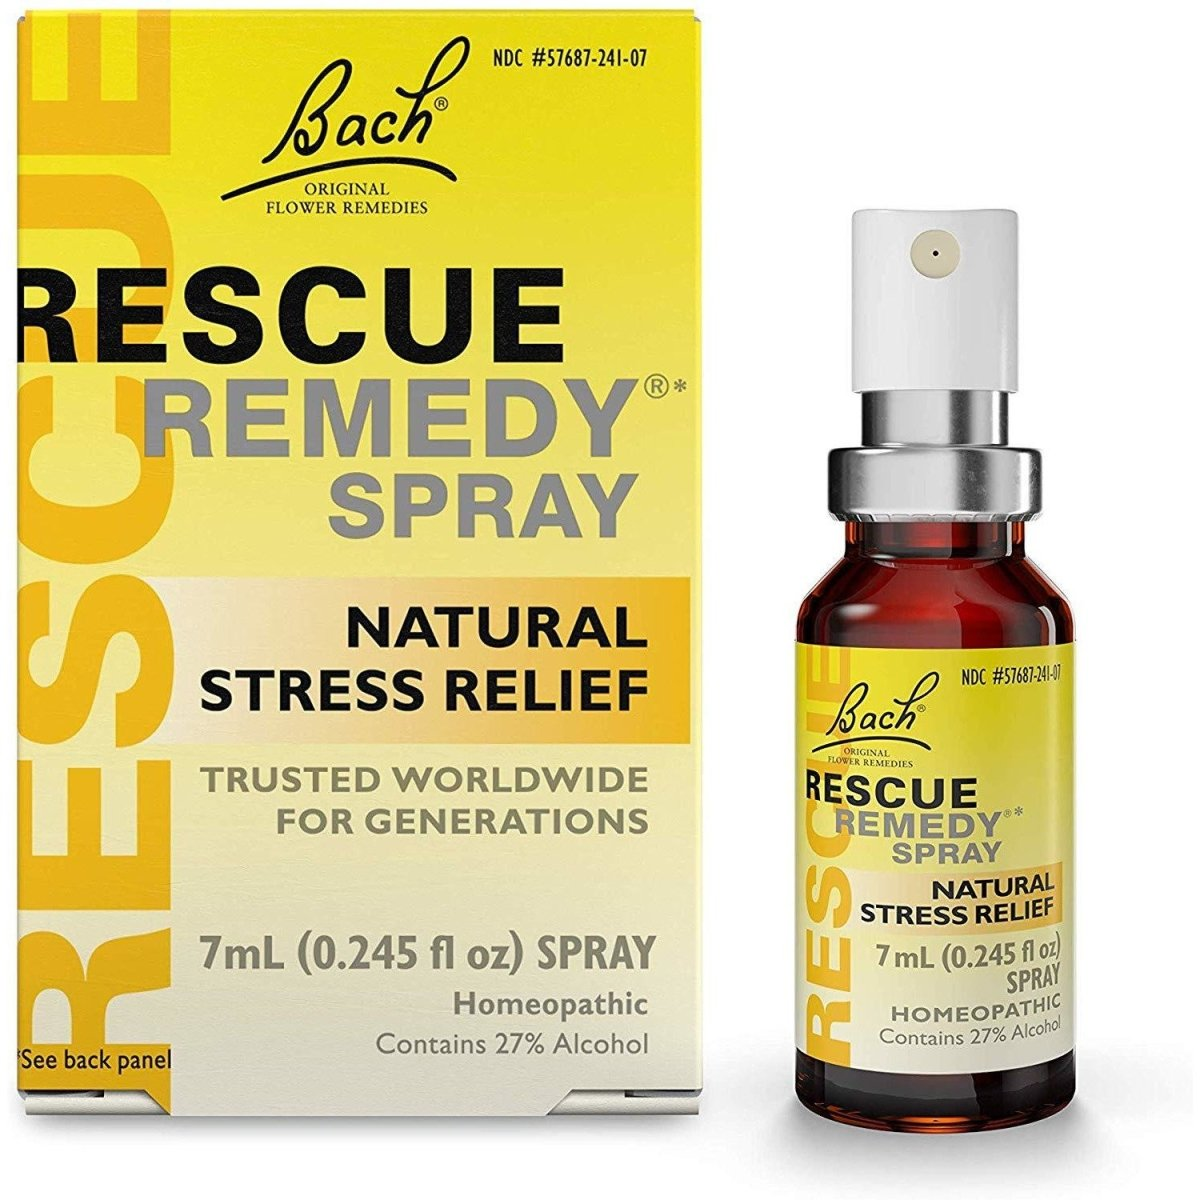 Rescue Remedy Spray - Stress Relief - 7ml